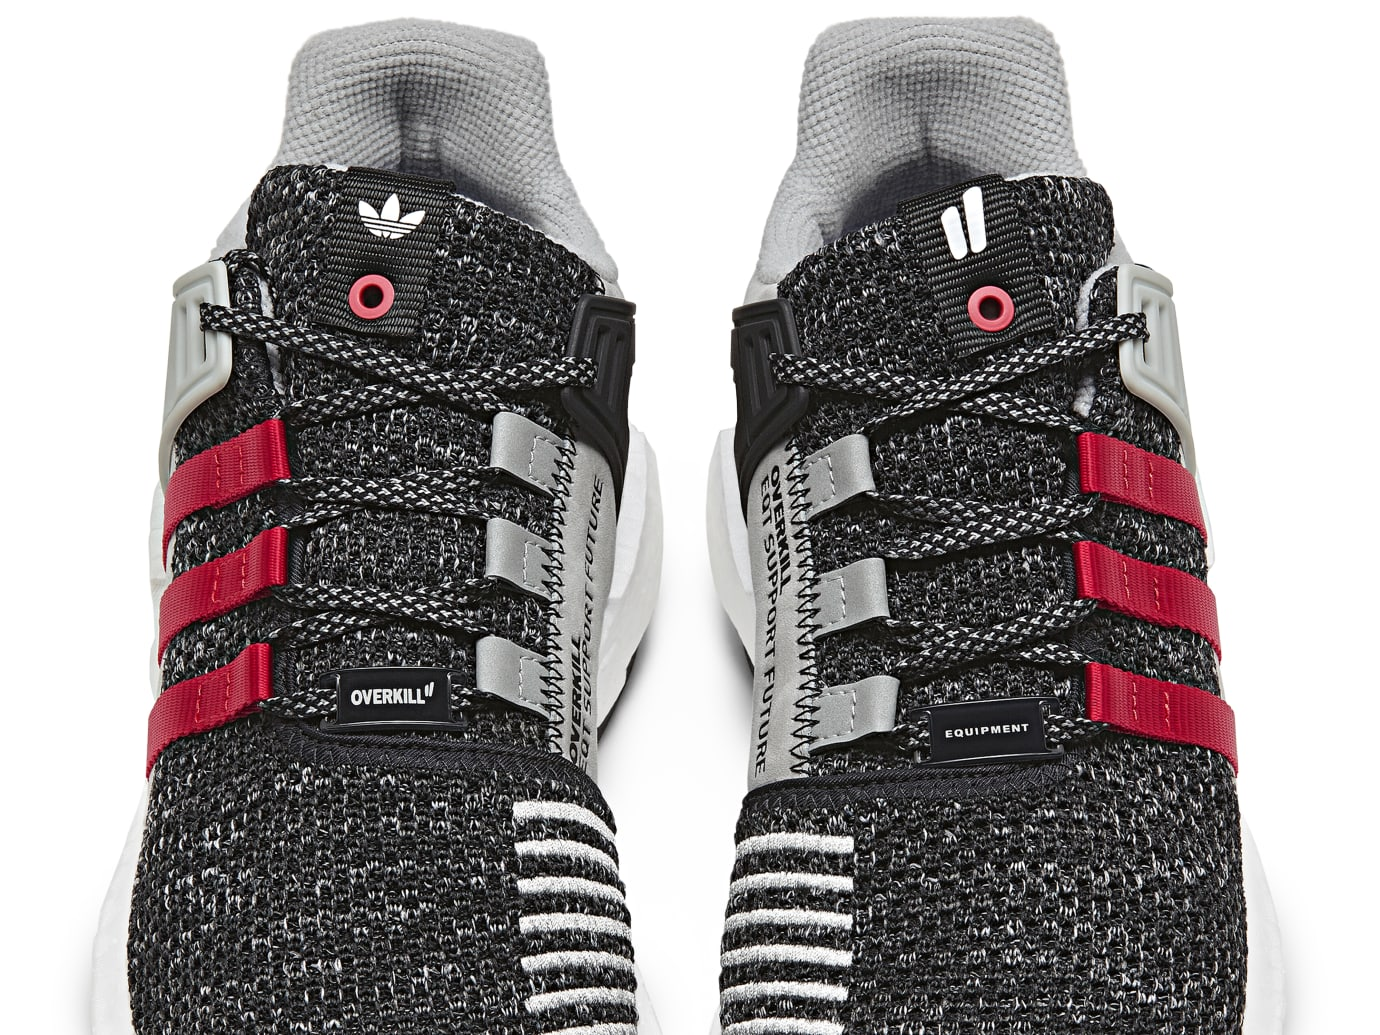 buy online d7ef8 89934 Image via Adidas Overkill x Adidas EQT Support Future BY2913